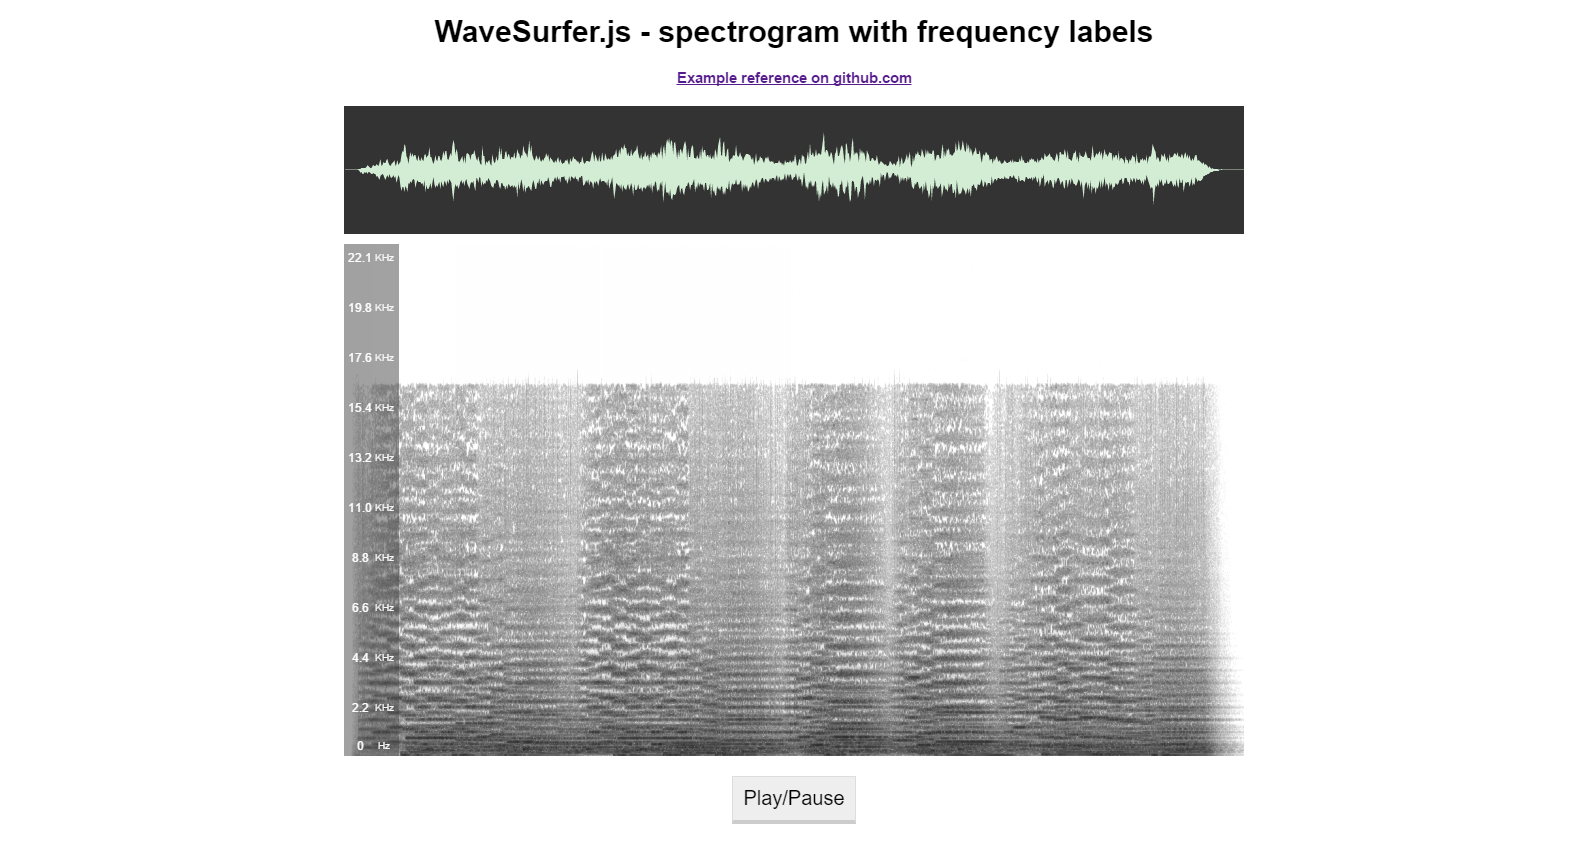 WaveSurfer.js spectrogram plugin with frequency labels